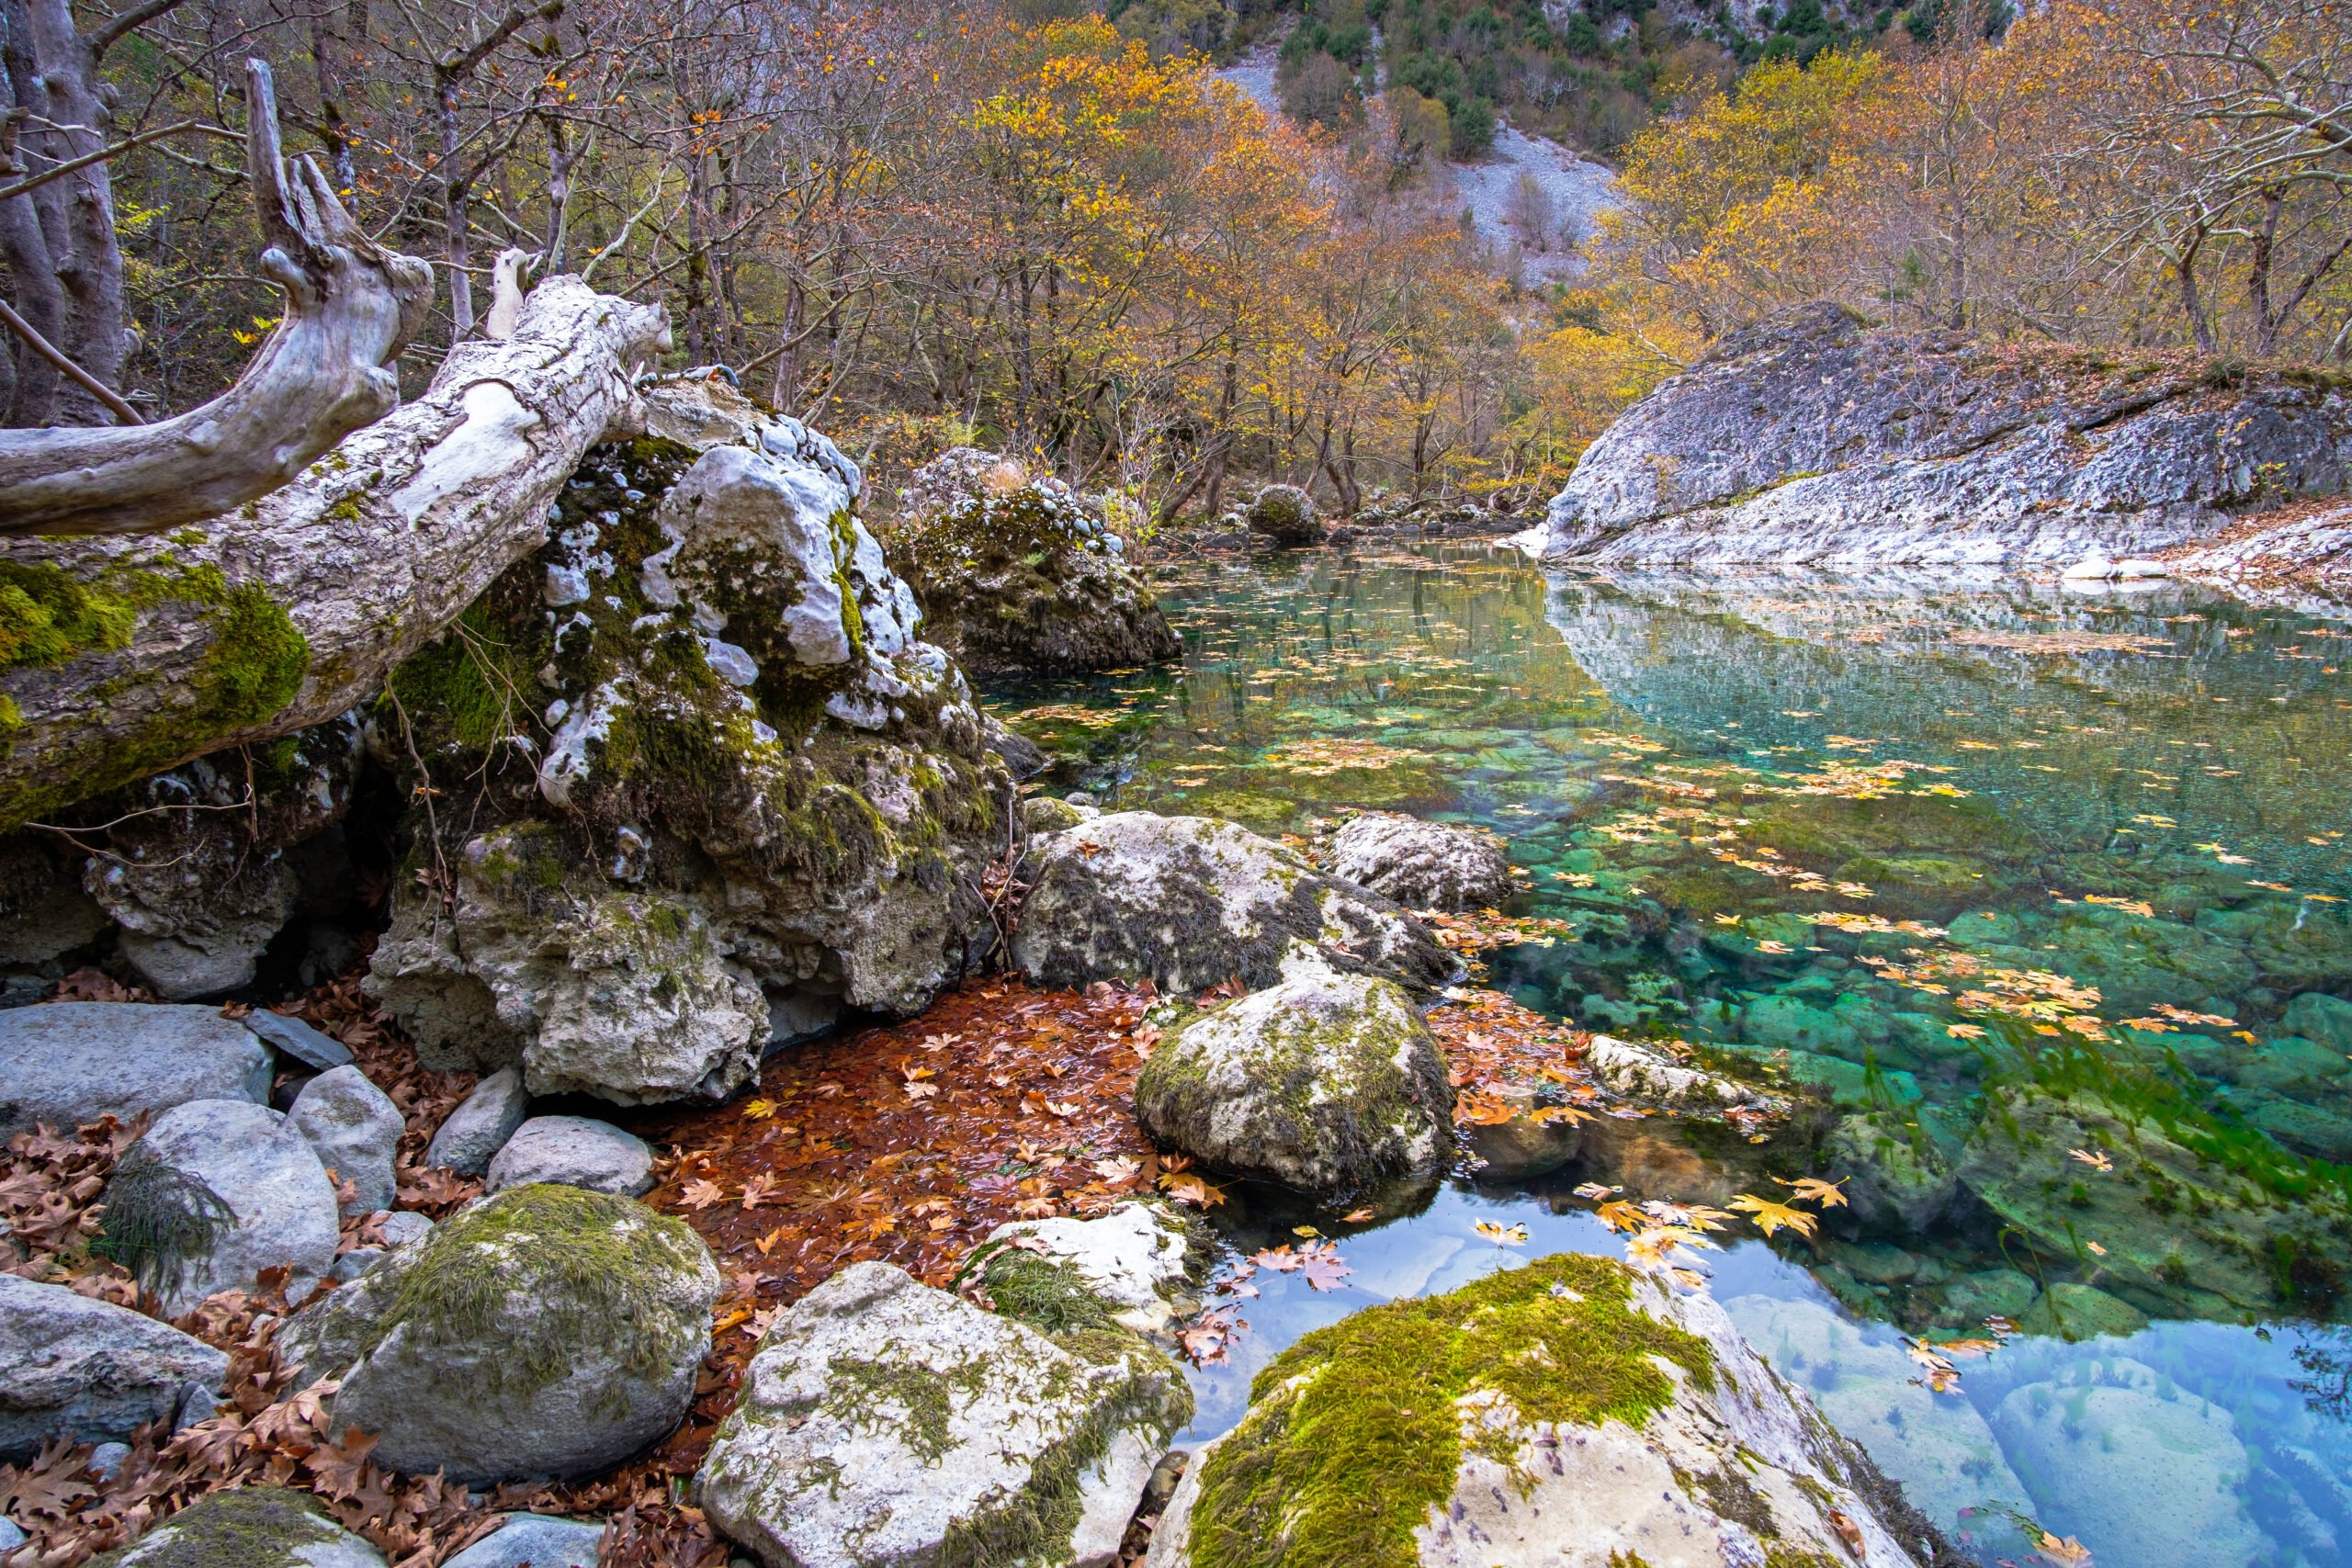 Discover The Beautiful Voidomatis Gorge On The Voidomatis Gorge Hiking Tour From Klidonia Village - Ioannina